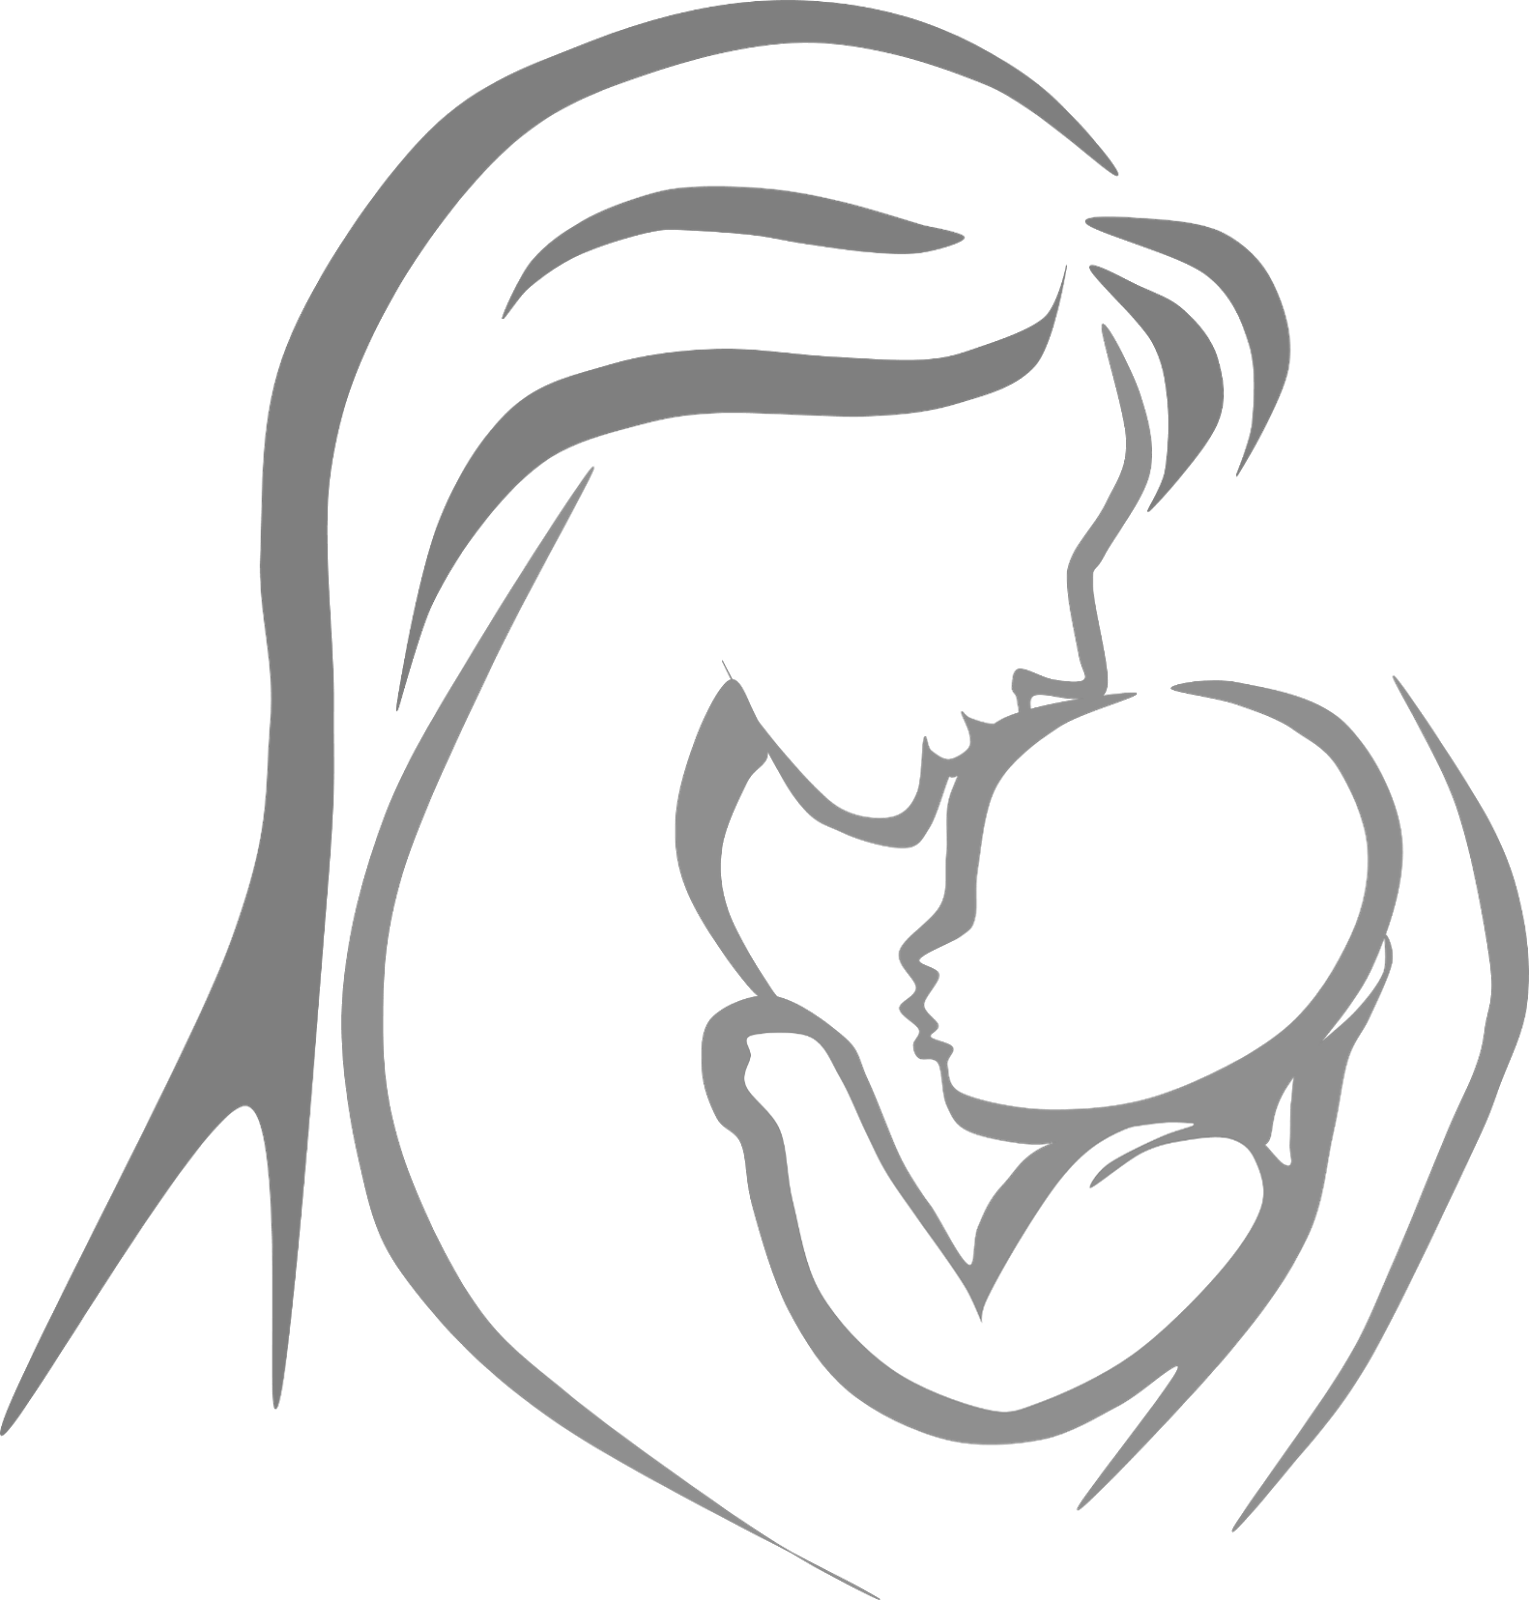 Free black and white clipart mother comforting child. D bf c ae